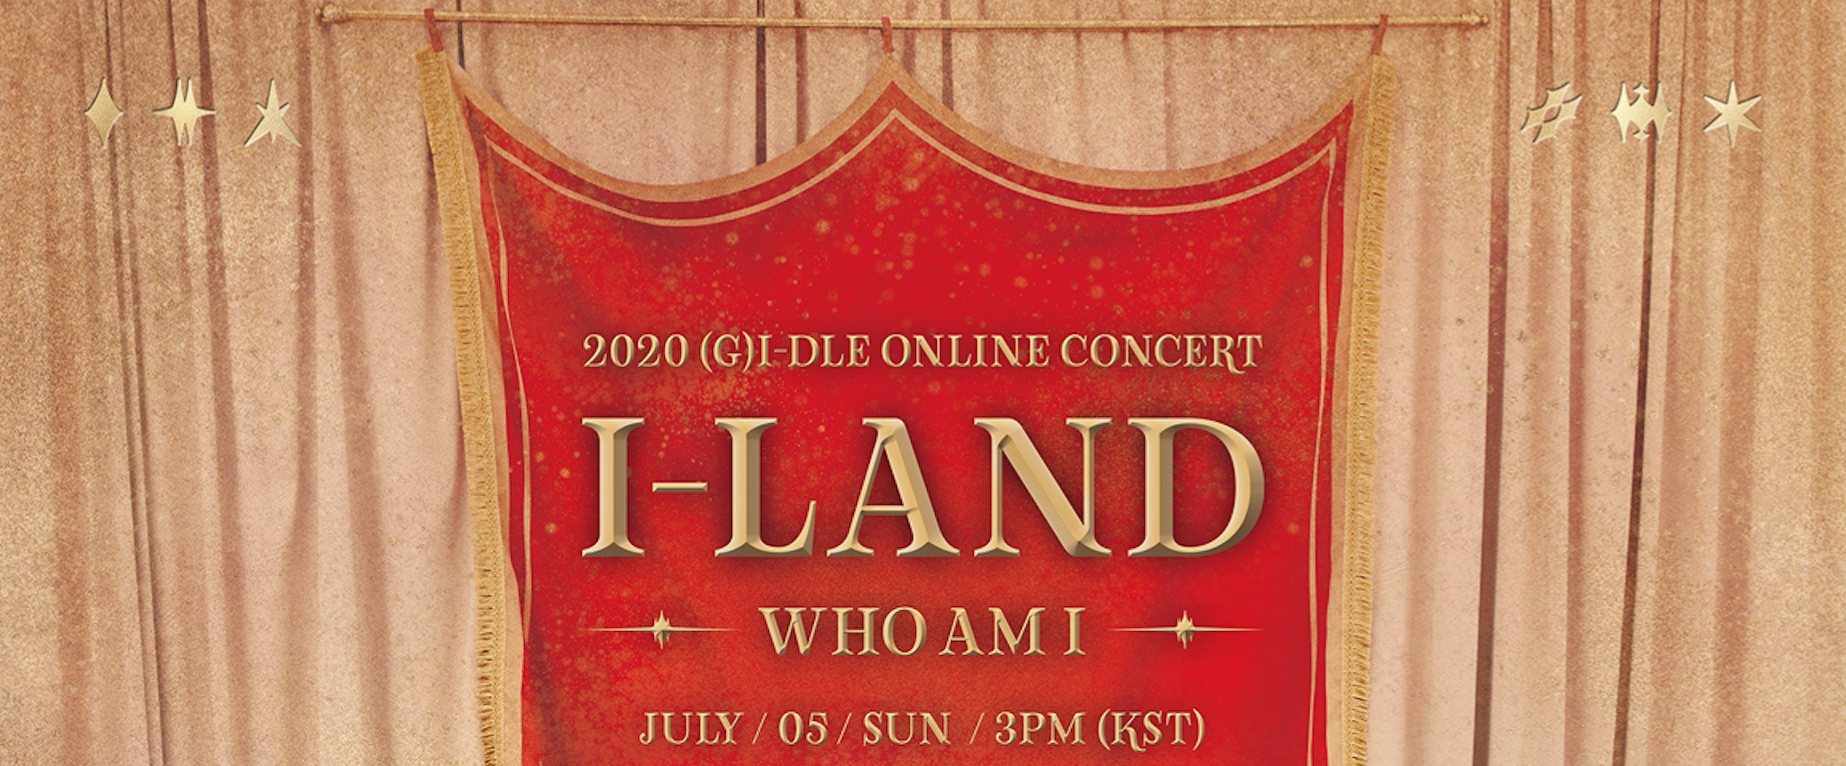 (G)I-DLE To Stream Online Concert 'I-Land' This Weekend